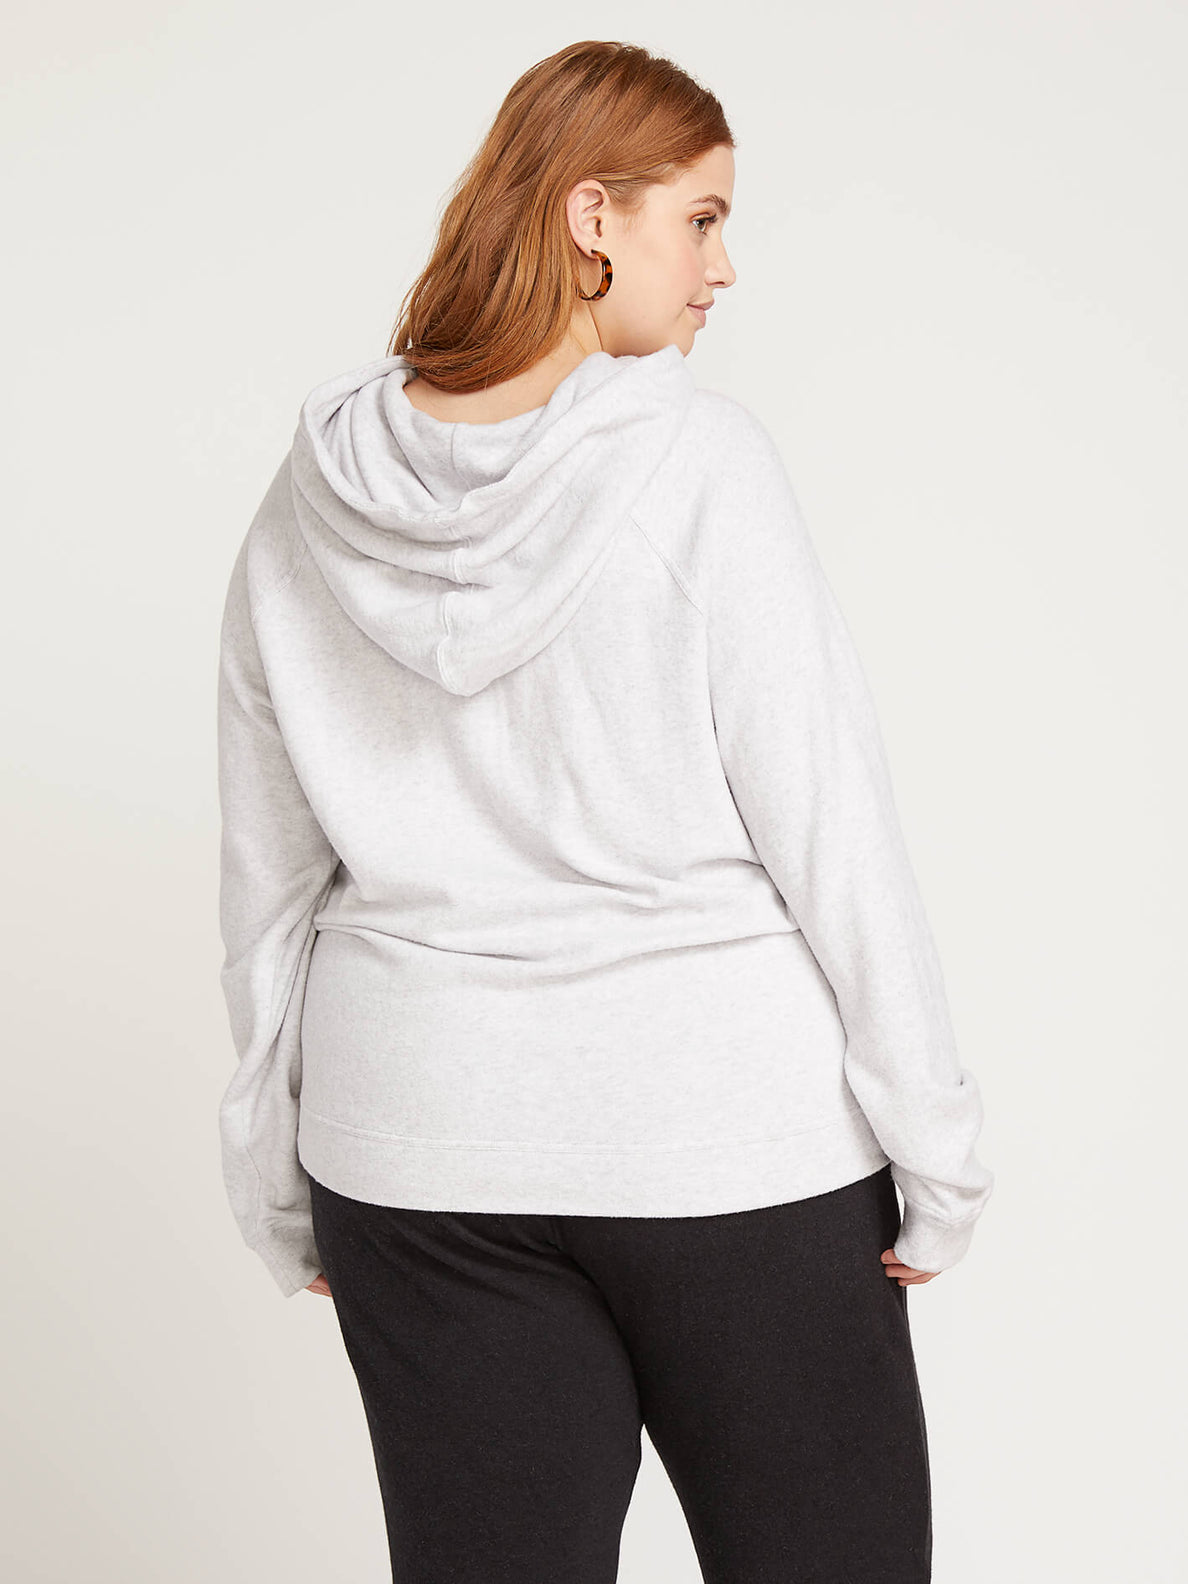 Lived In Lounge Pullover Hoodie In Light Grey, Back Plus Size View